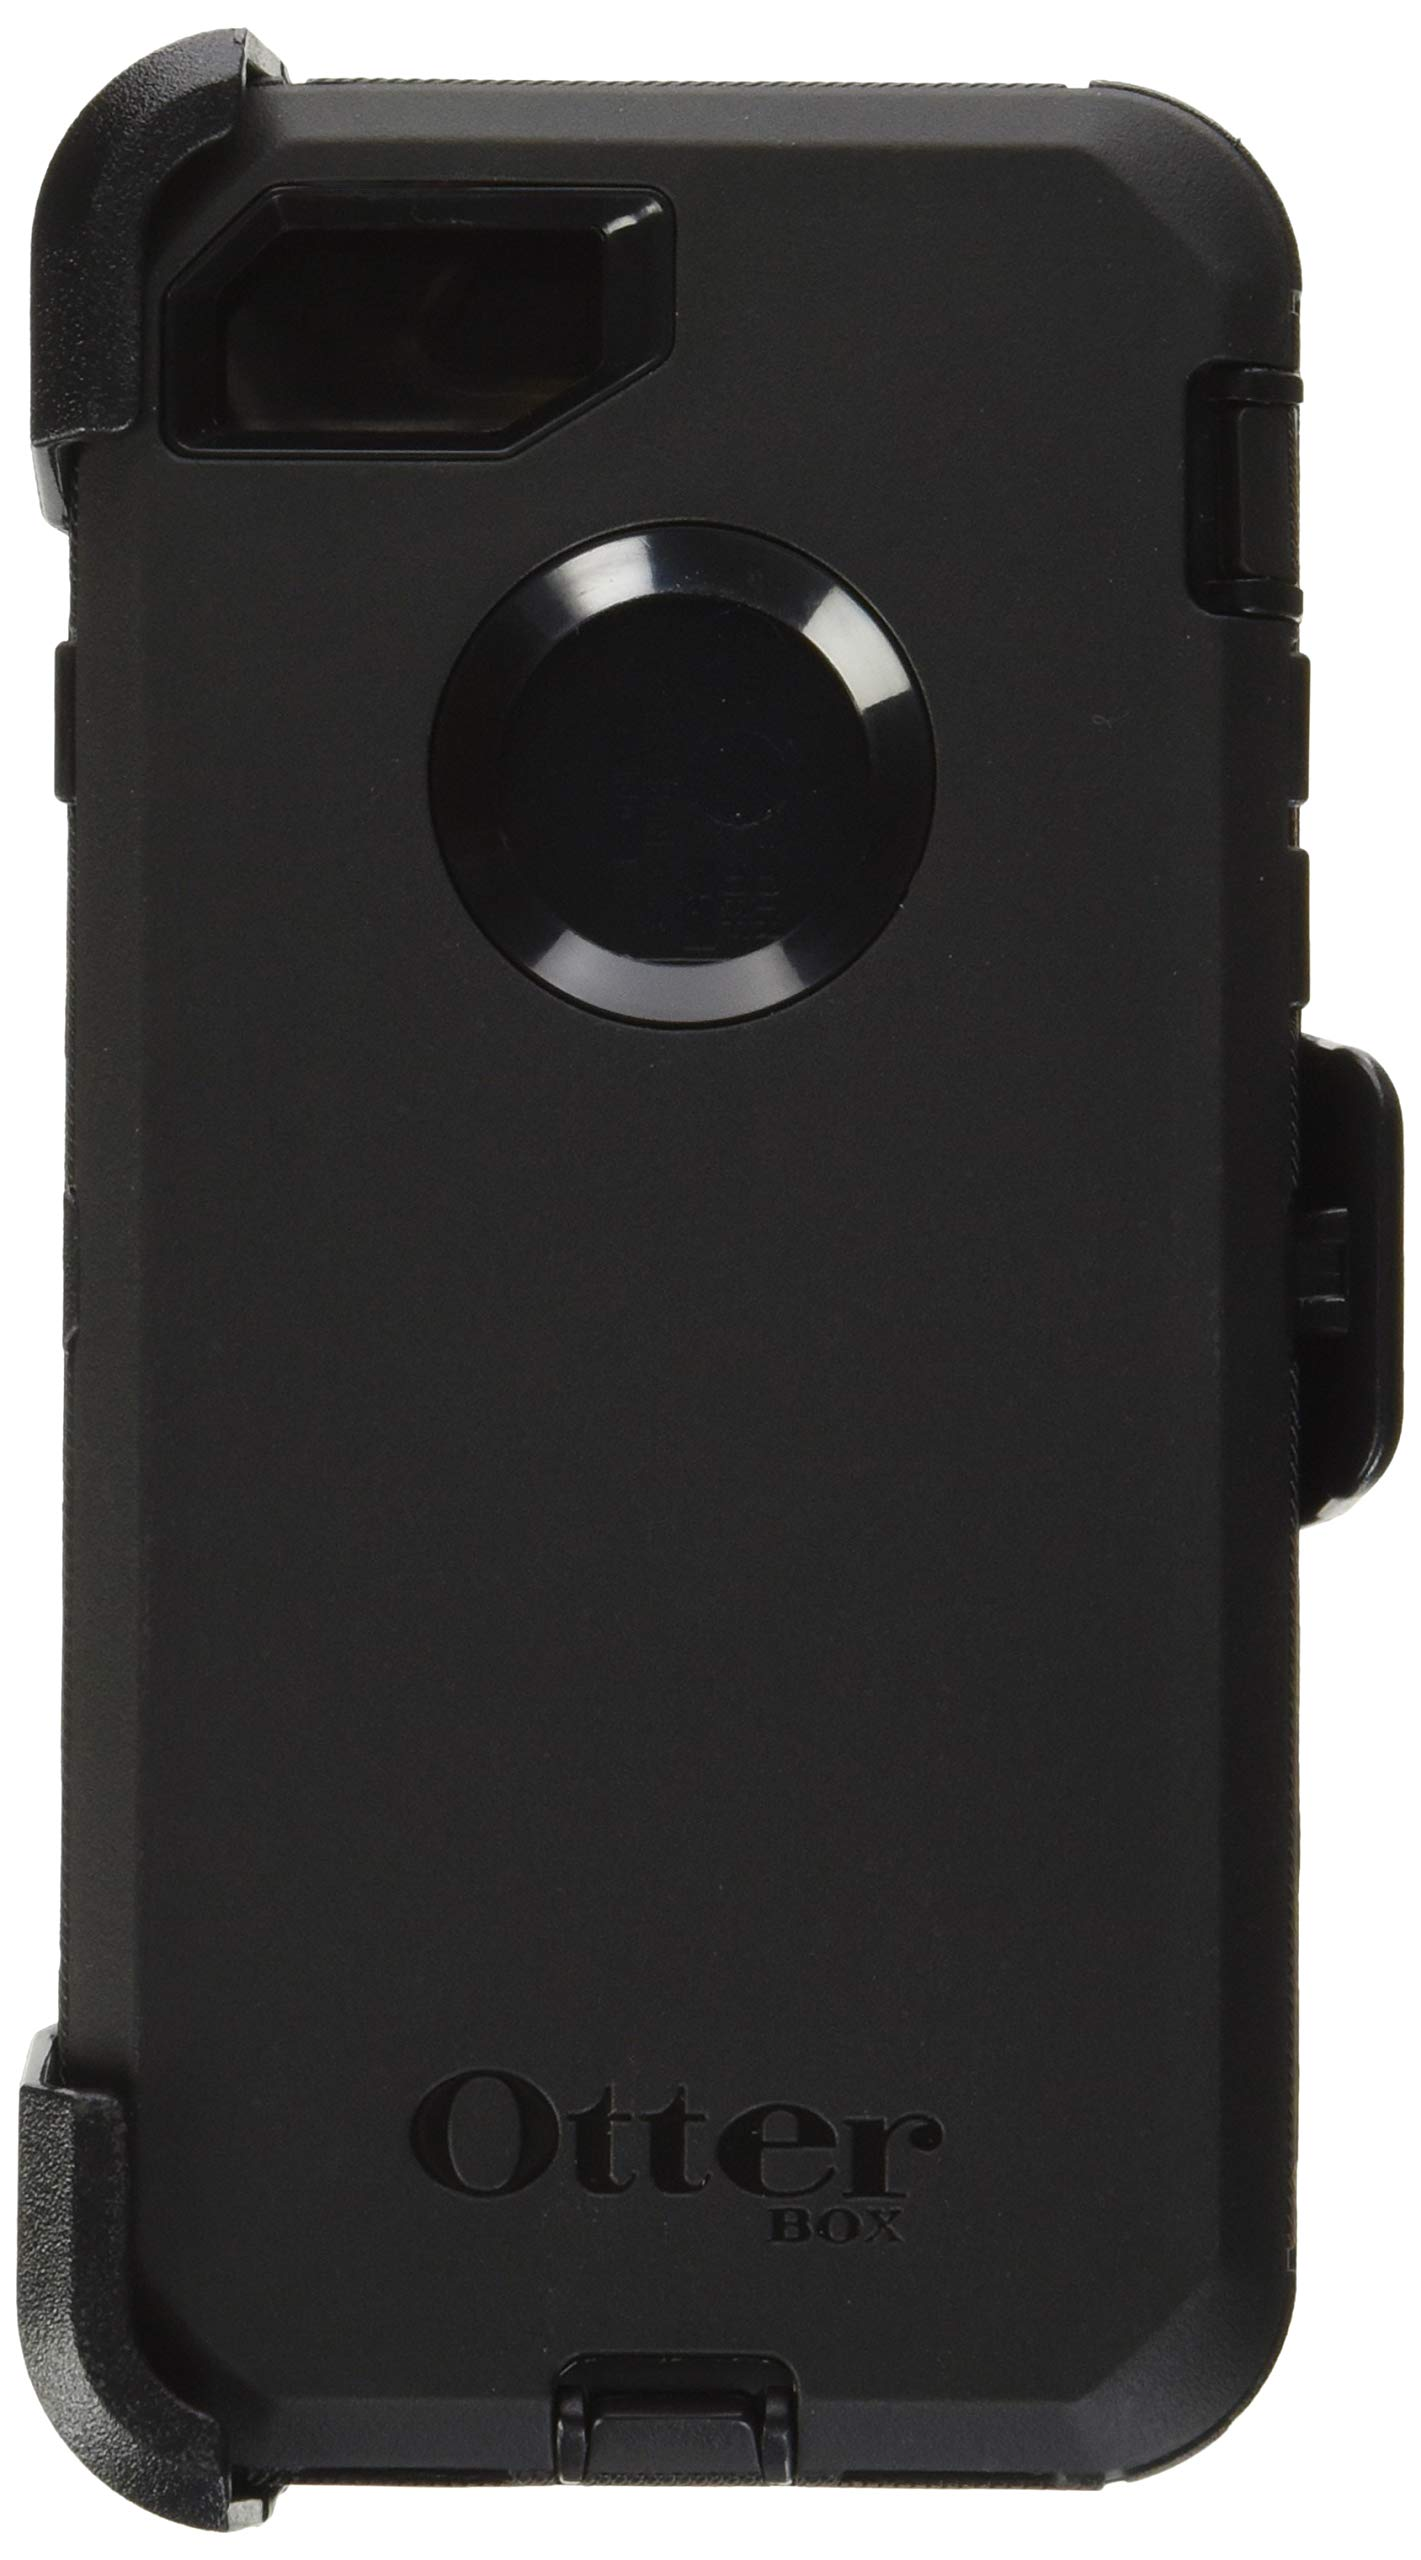 OtterBox Defender Series Case for iPhone 8 & iPhone 7 (Not Plus) - Frustration Free Packaging - Black by OtterBox